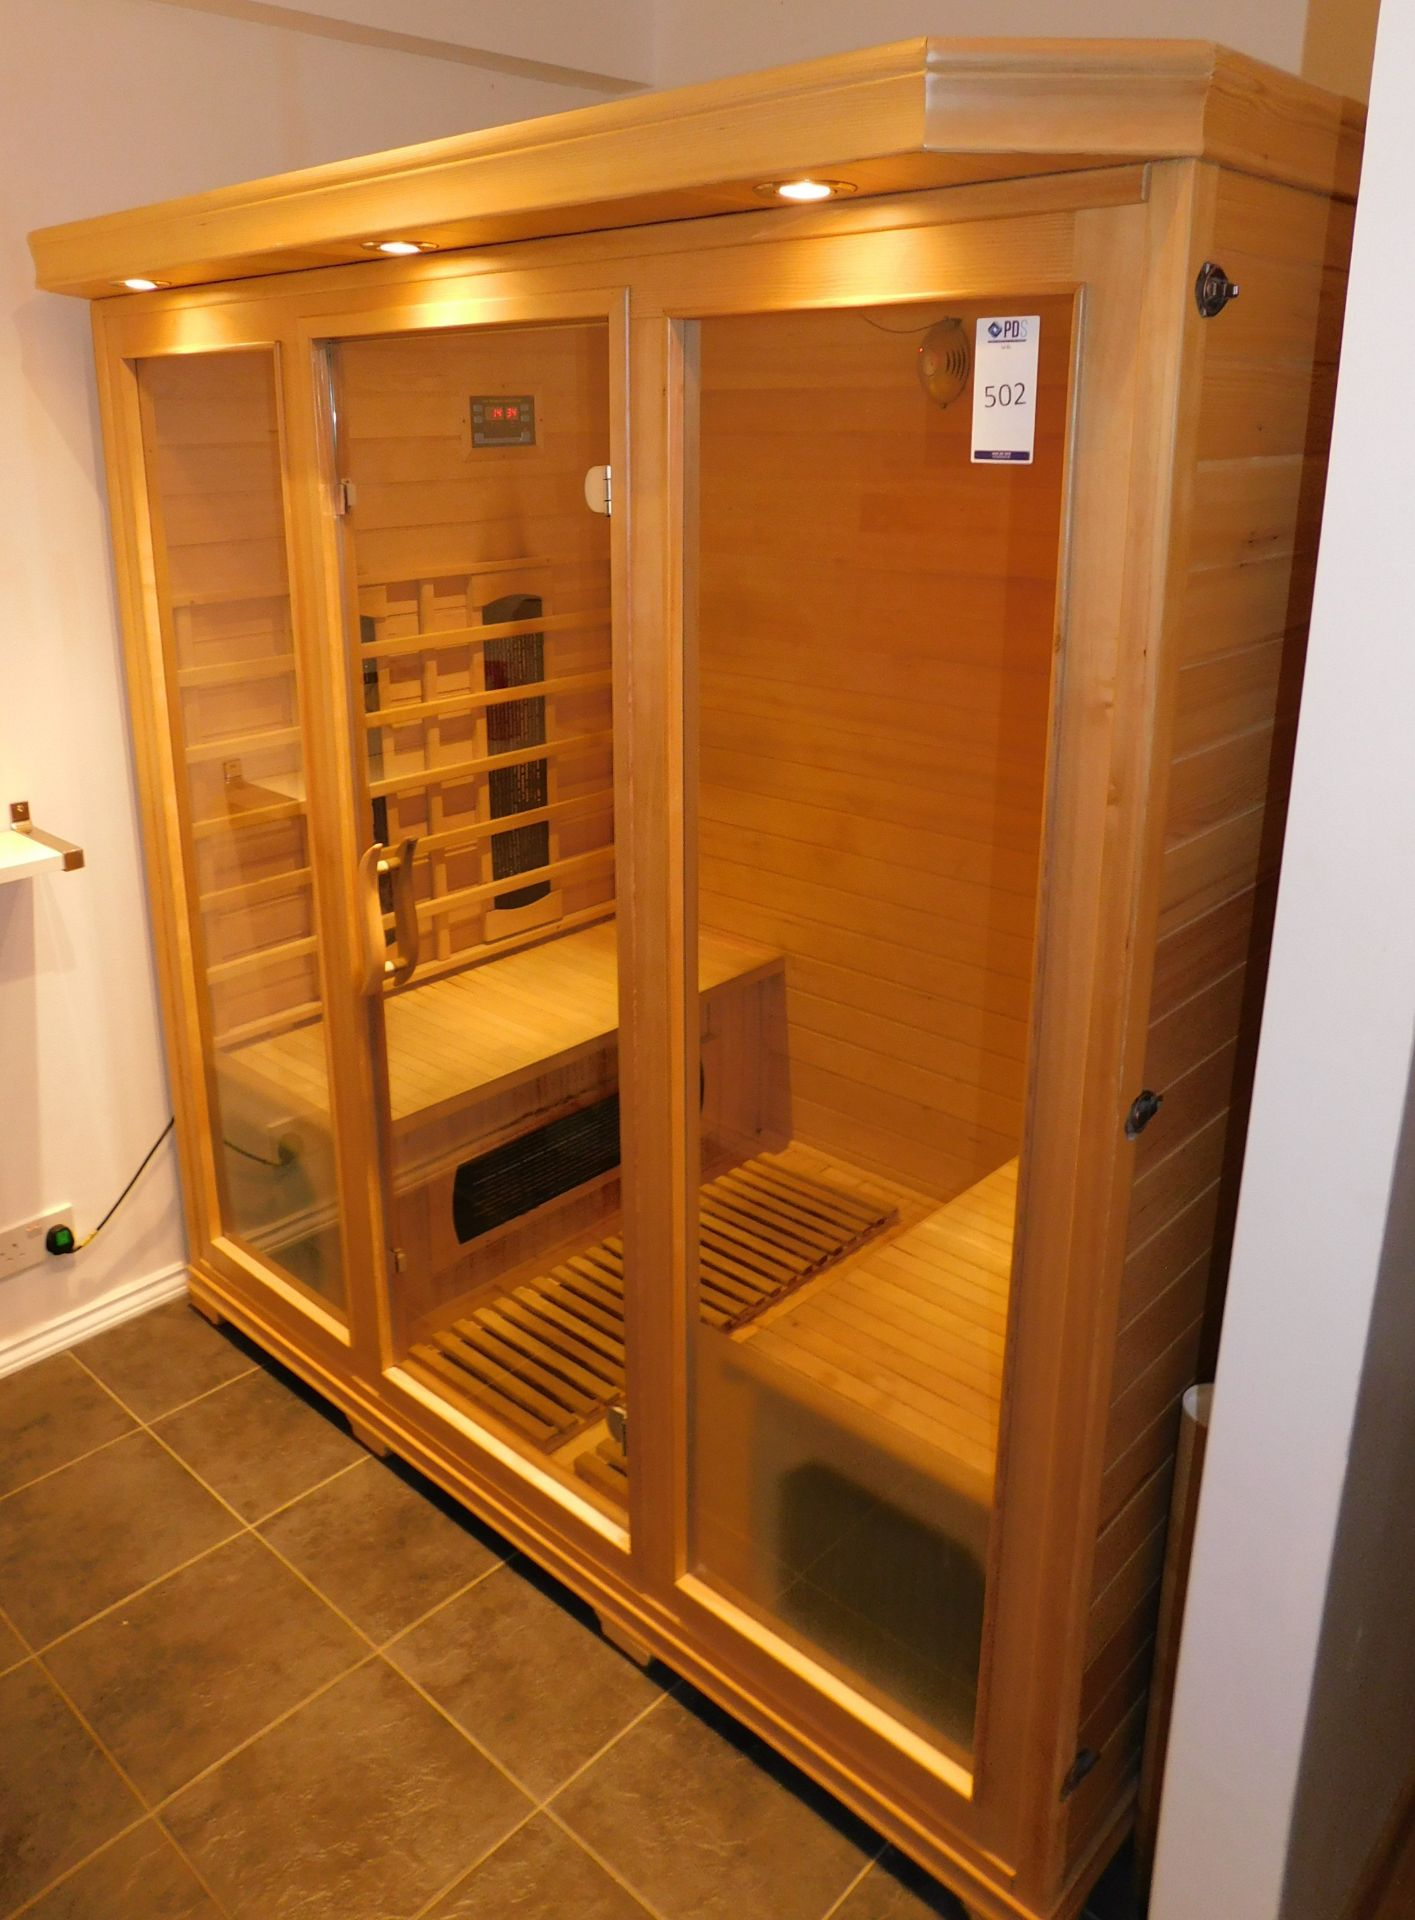 FAR Freestanding Infrared Sauna, W1.8m x H1.9m x D1.2m (Located Corby – See General Notes for